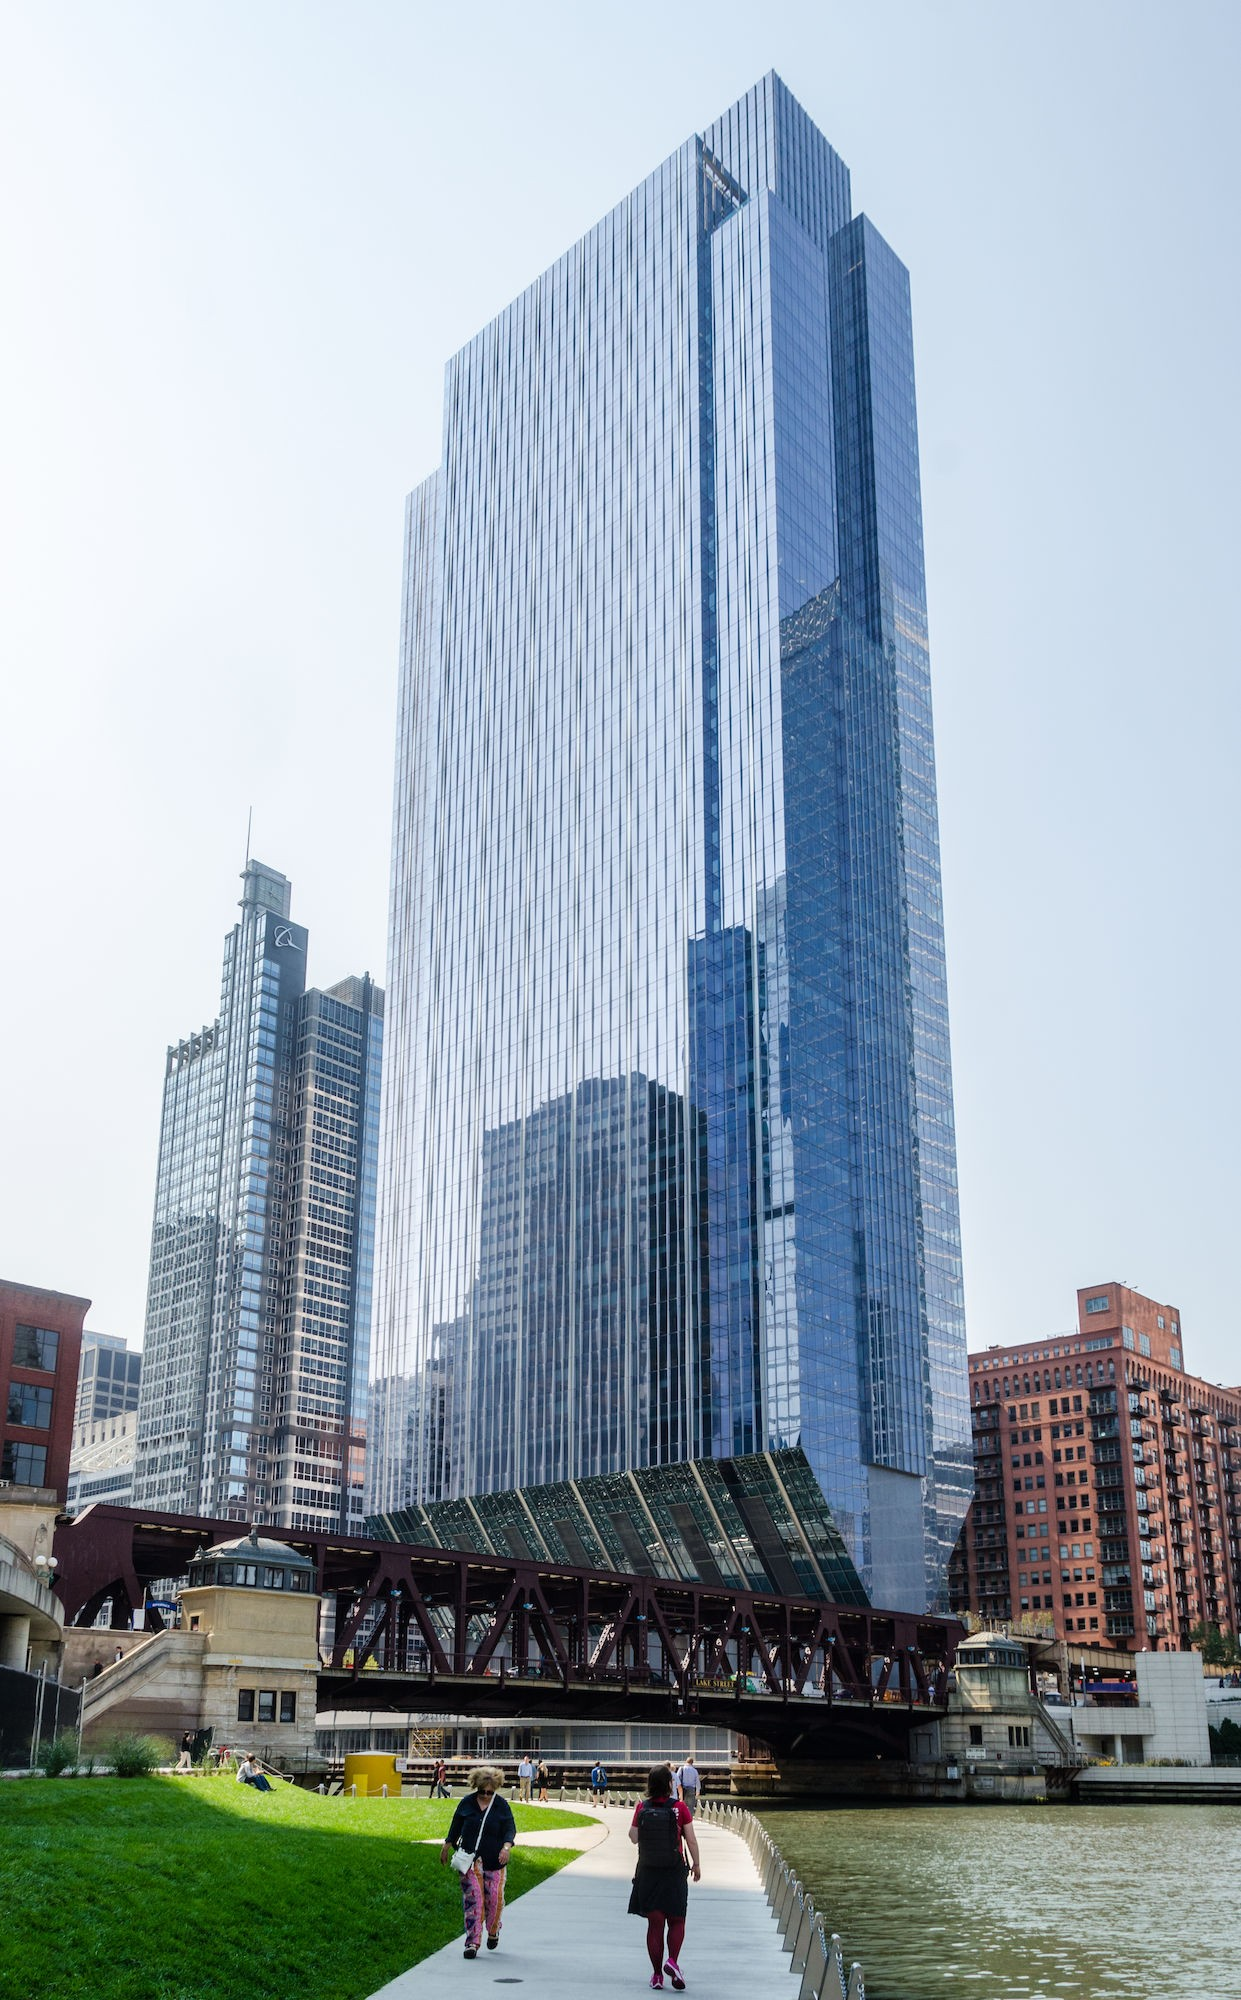 Chicago Walking Tours. Free Tours by Foot is pleased to present the best pay-what-you-like guided Chicago walking tours. These interesting and informative sightseeing city tours will take you through many of the Windy City's most famous neighborhoods.